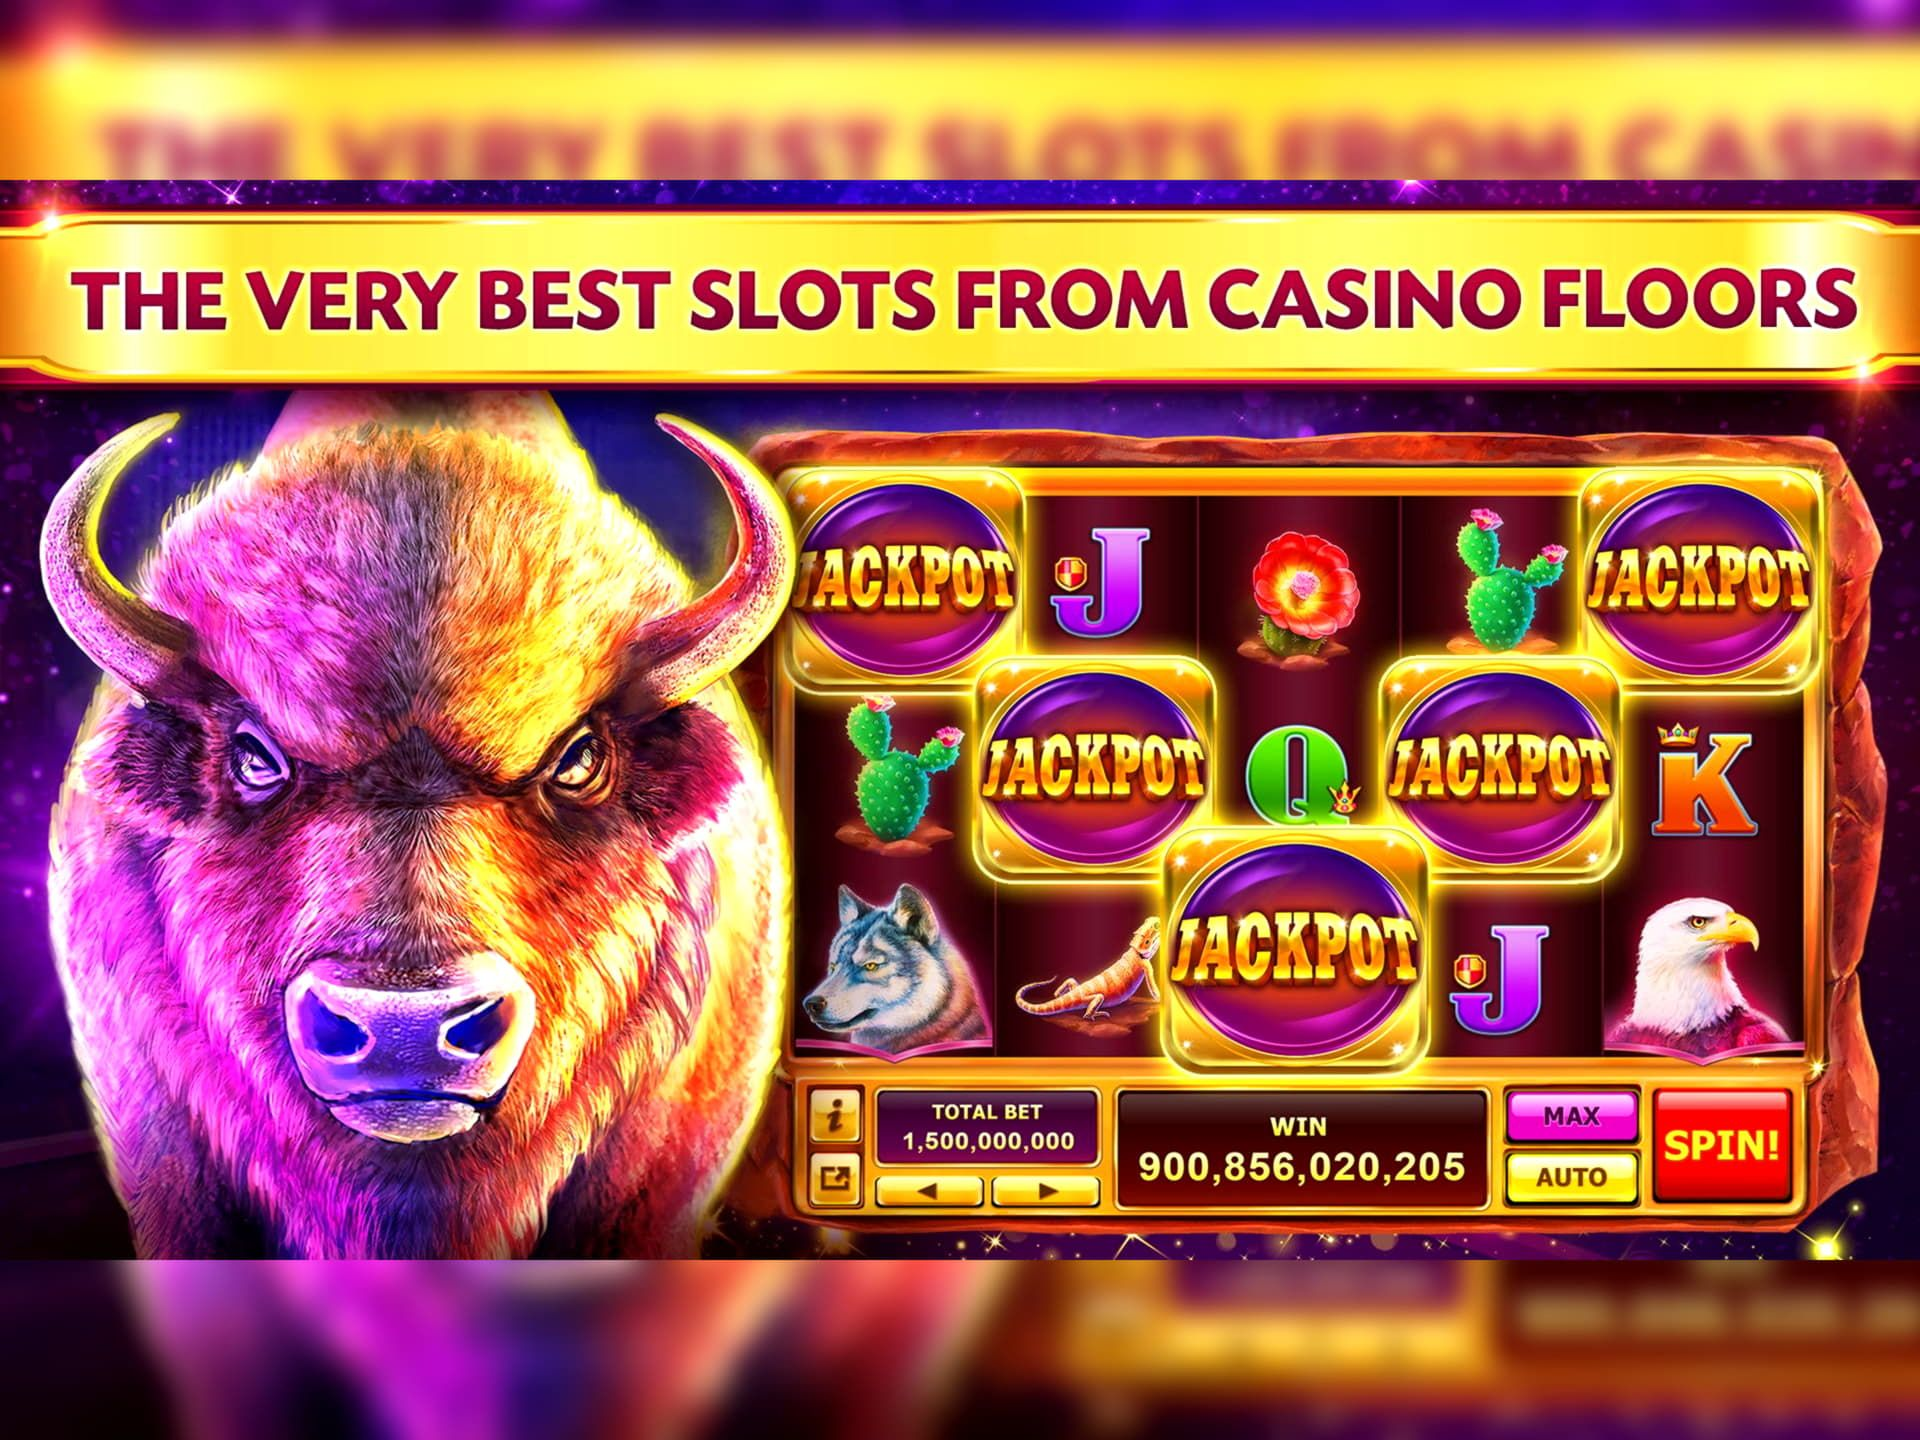 240 free spins at lucky red casino 35x wager requirements